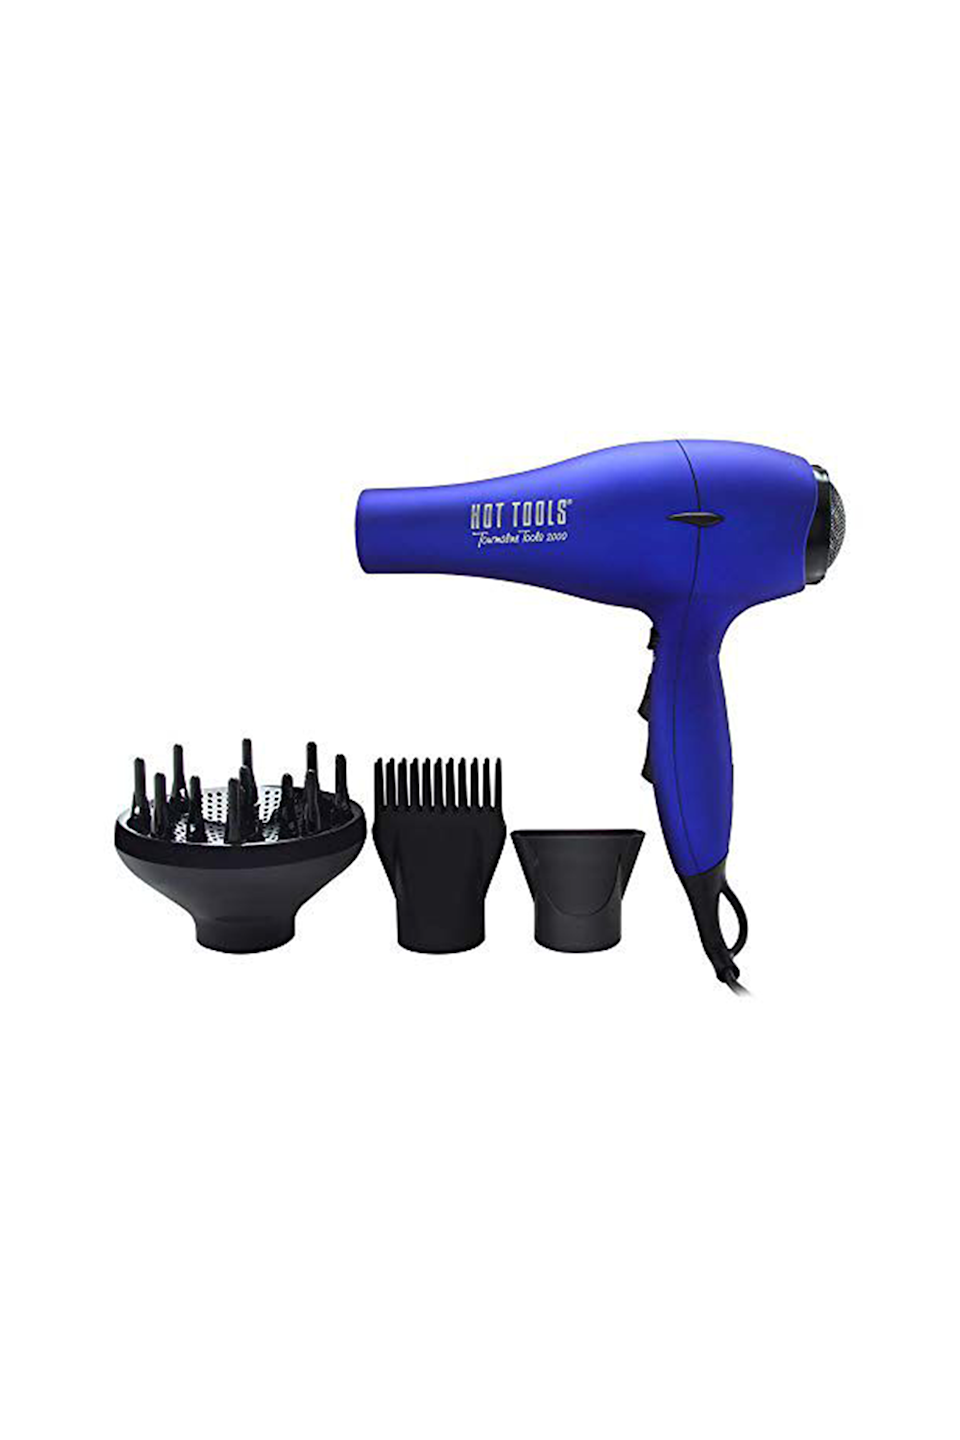 """<p><strong>Hot Tools</strong></p><p>amazon.com</p><p><strong>$65.33</strong></p><p><a href=""""http://www.amazon.com/dp/B072LTSQ7H/?tag=syn-yahoo-20&ascsubtag=%5Bartid%7C10063.g.35000905%5Bsrc%7Cyahoo-us"""" rel=""""nofollow noopener"""" target=""""_blank"""" data-ylk=""""slk:Shop Now"""" class=""""link rapid-noclick-resp"""">Shop Now</a></p><p>As a trusted brand, Hot Tools provides a dryer that comes in at just under $70 while also being lightweight, lacking the clunkiness that can often leave you tired after styling.</p>"""